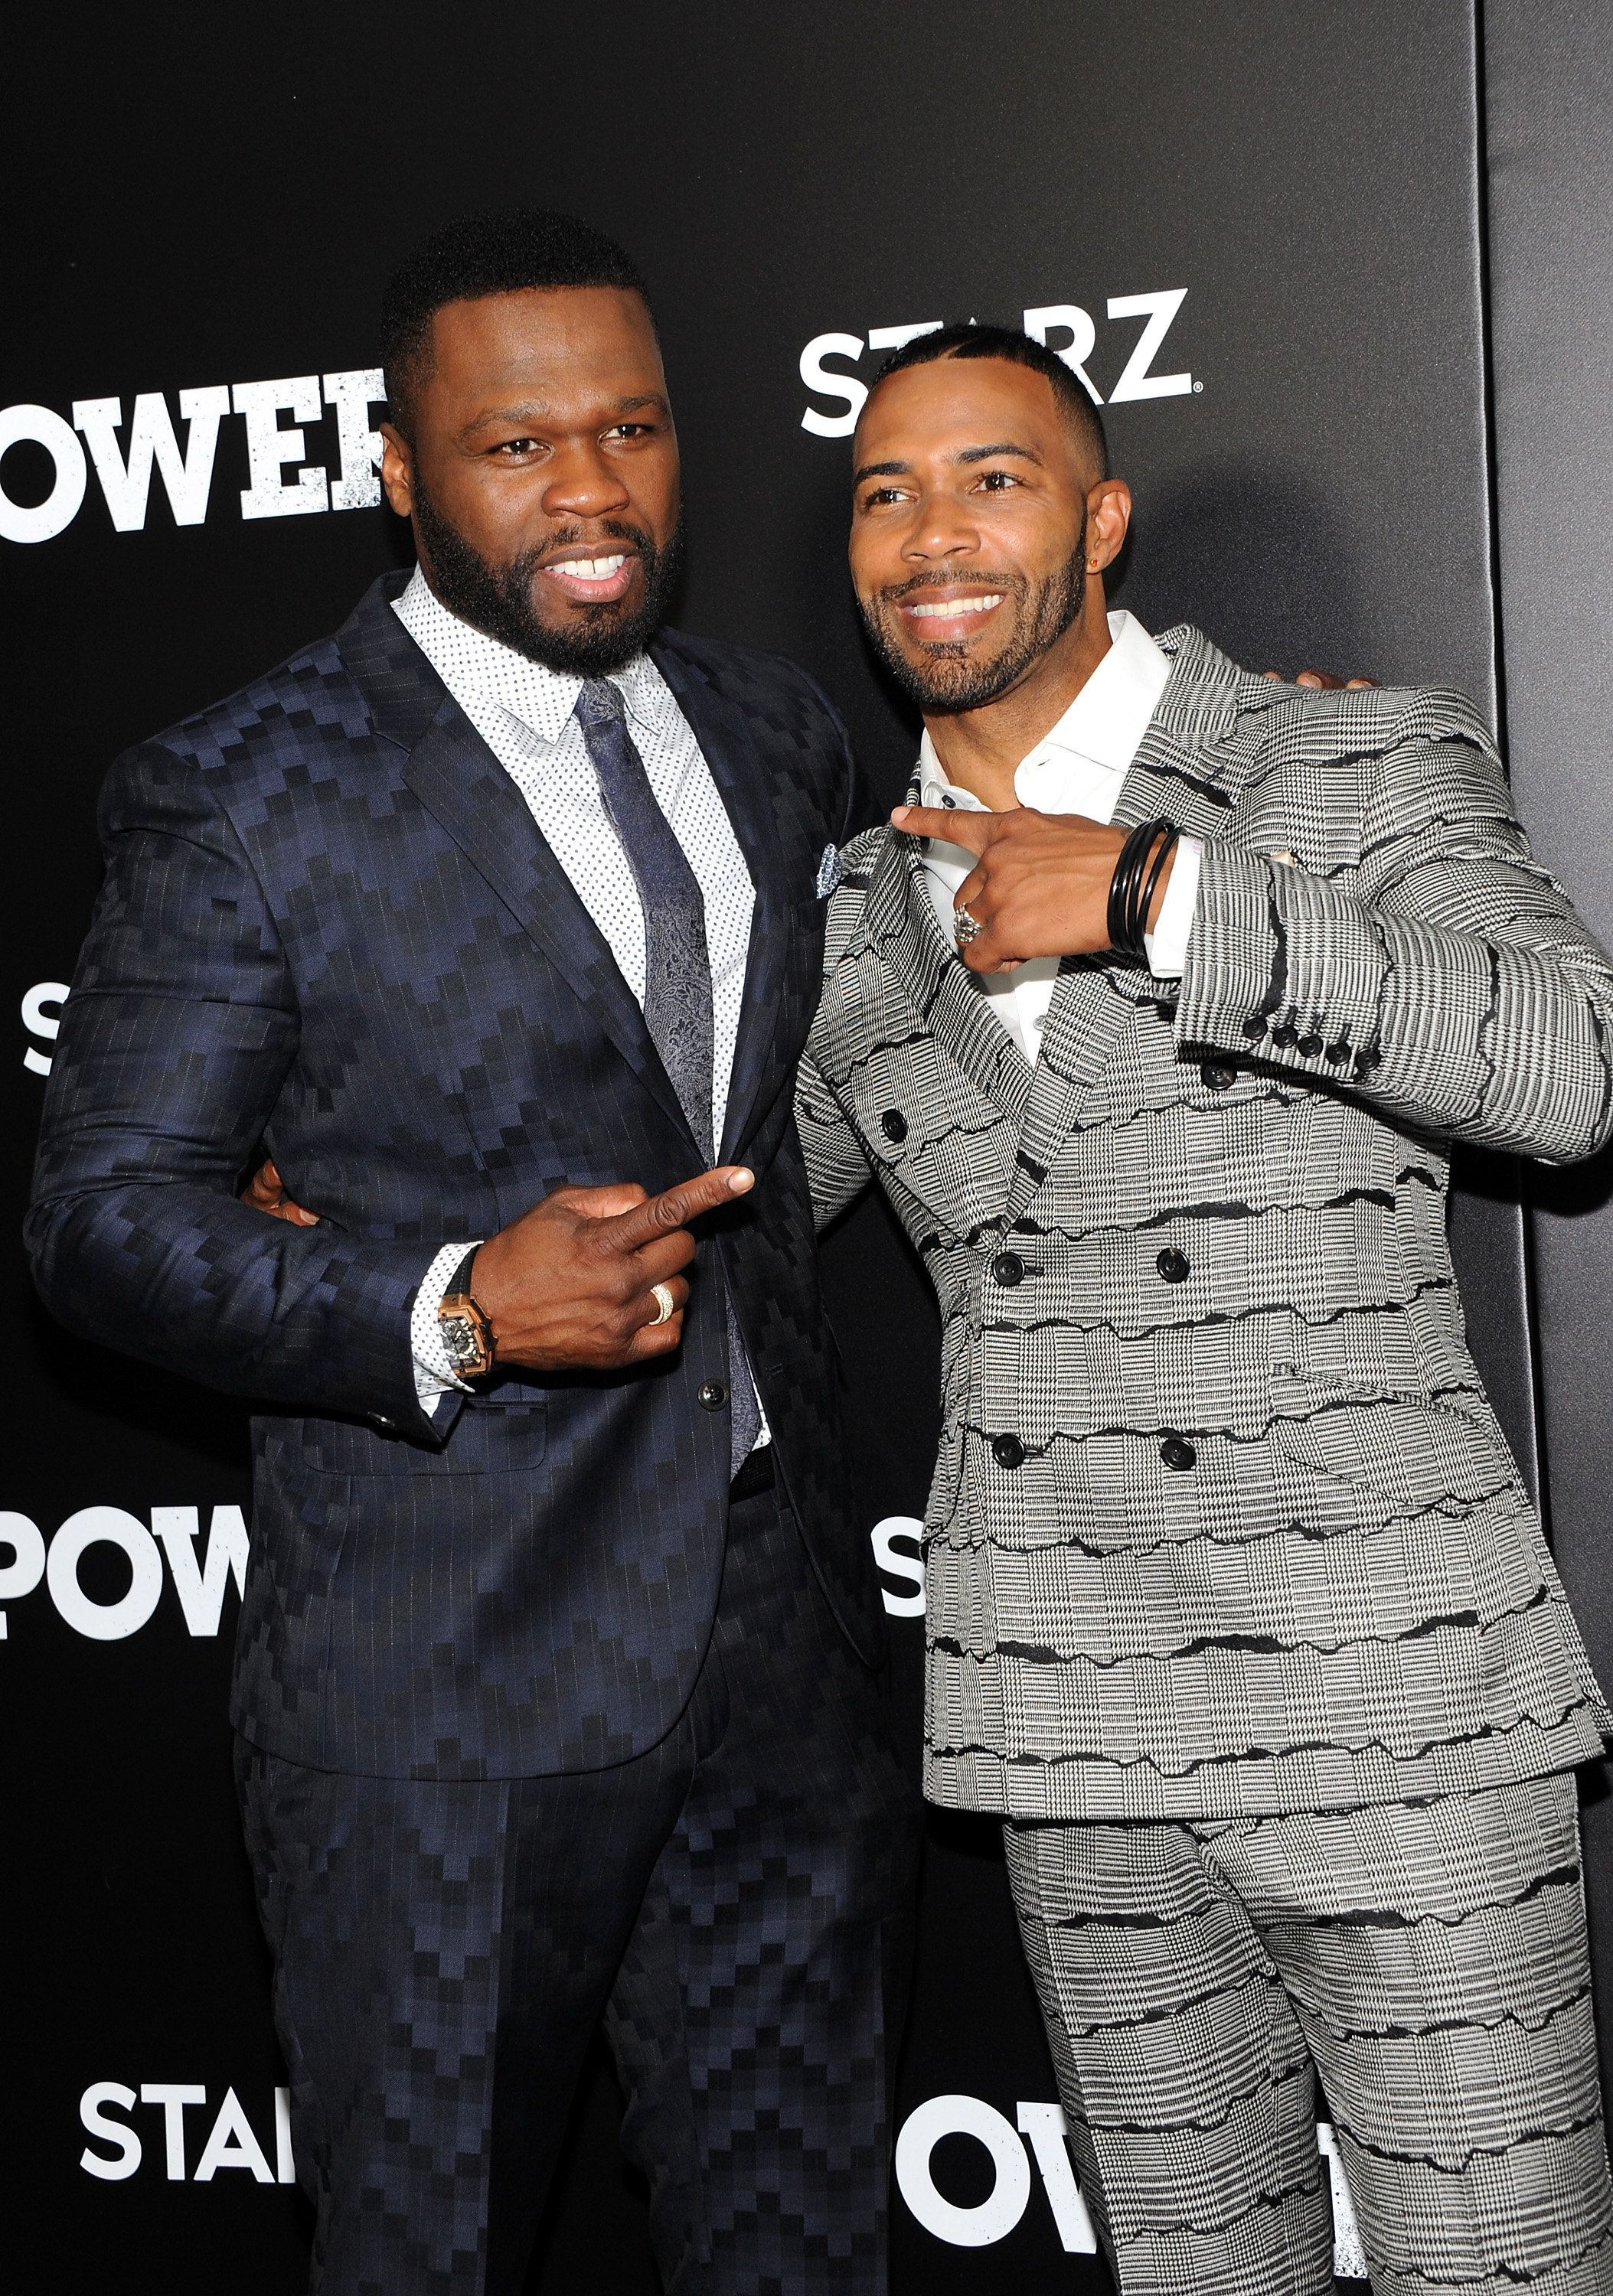 NEW YORK, NY - JUNE 22: Curtis '50 Cent' Jackson (L) and Omari Hardwick attend 'Power' Season 3 New York Premiere at SVA Theatre on June 22, 2016 in New York City.  (Photo by Desiree Navarro/WireImage)